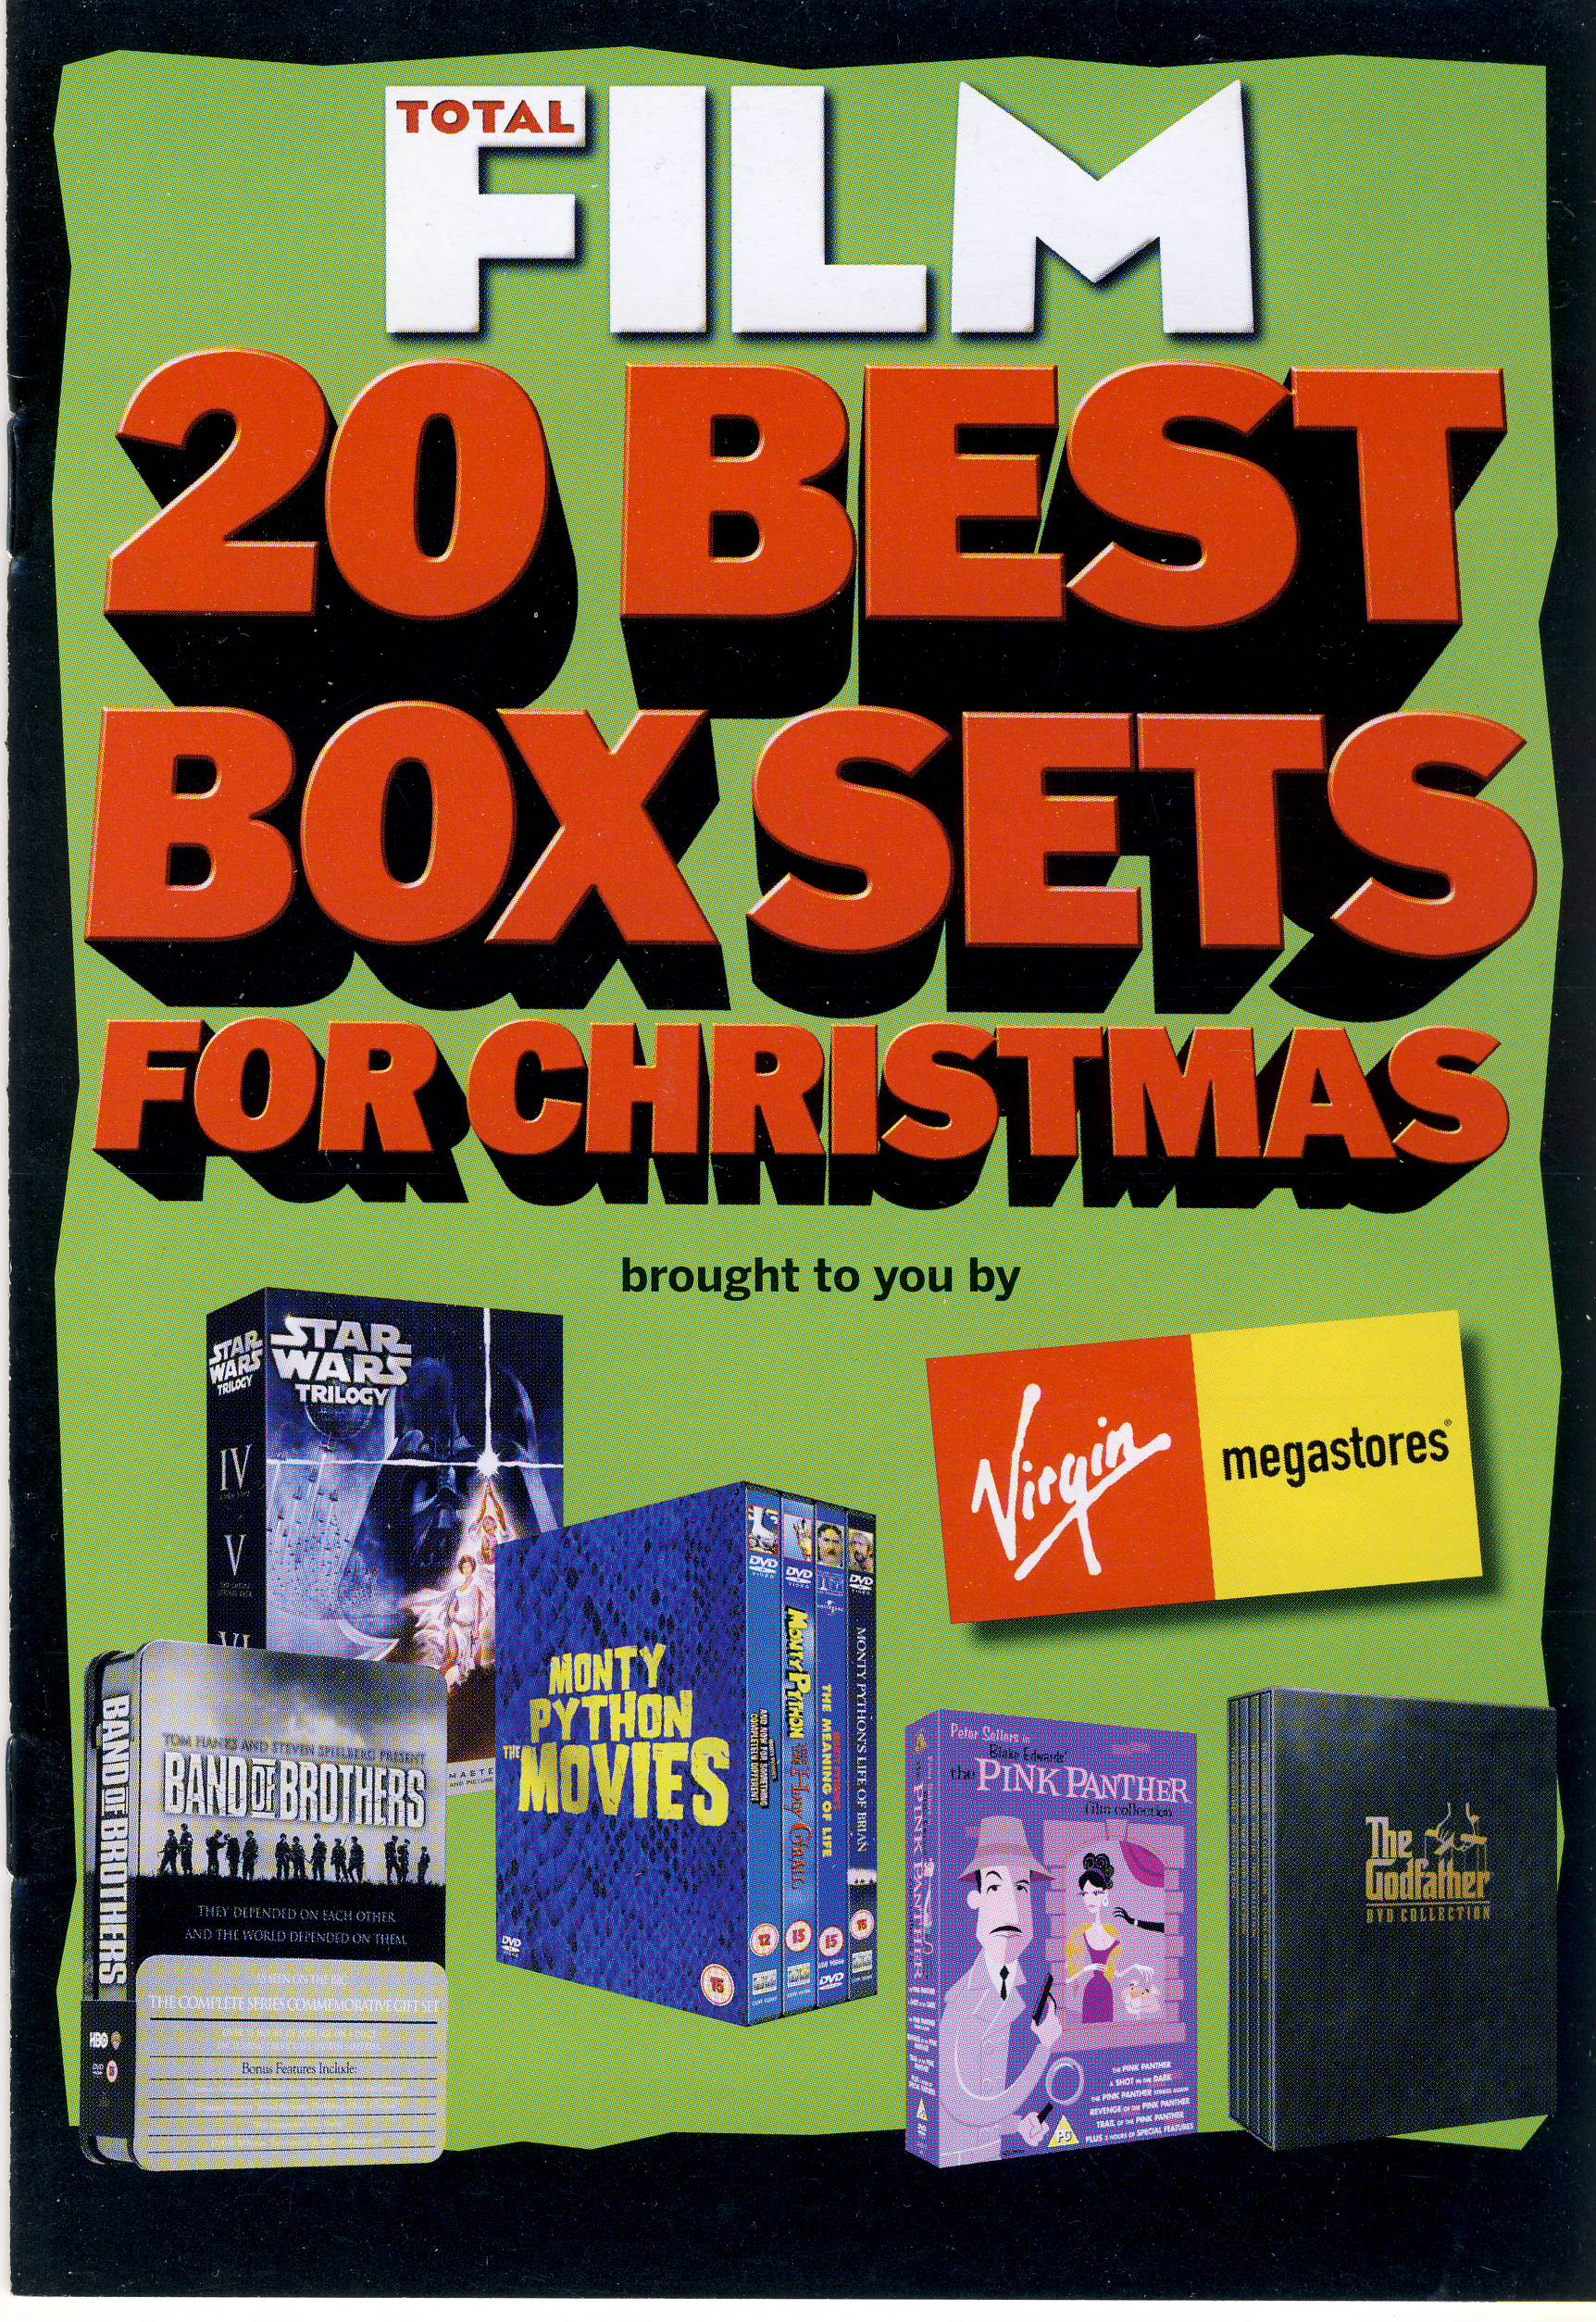 Total Film Booklet 20 BEST BOX SETS FOR CHRISTMAS 24 pages measures approx 15 cm x 21cm ref101627 Vrigin megastores small magazine pre-owned in good read condition.